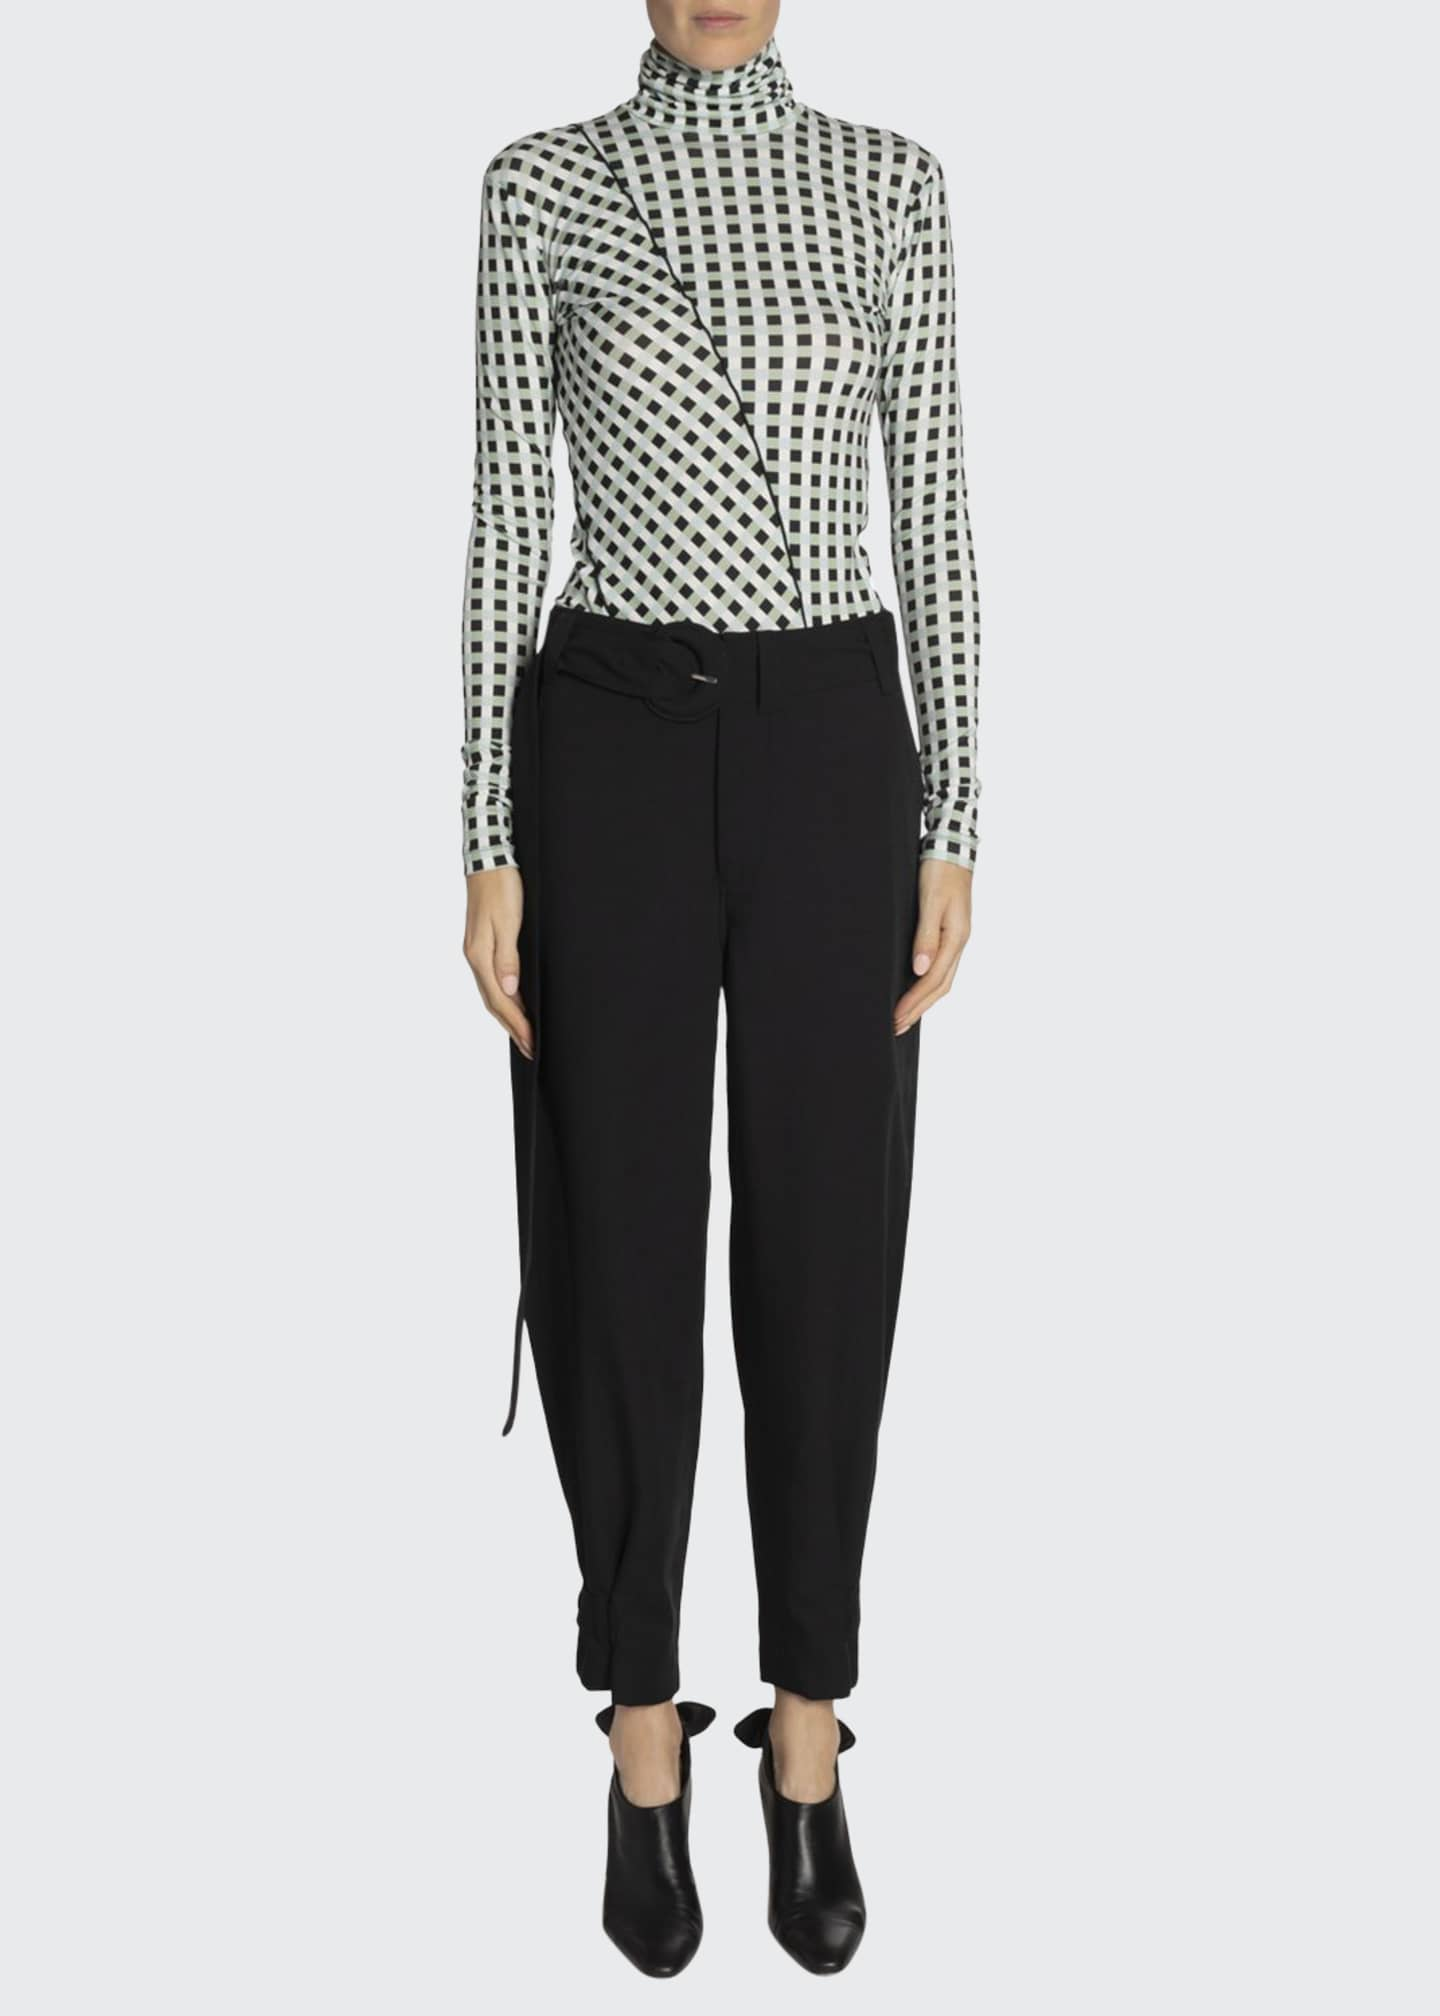 Proenza Schouler White Label Belted Tapered Ankle Pants